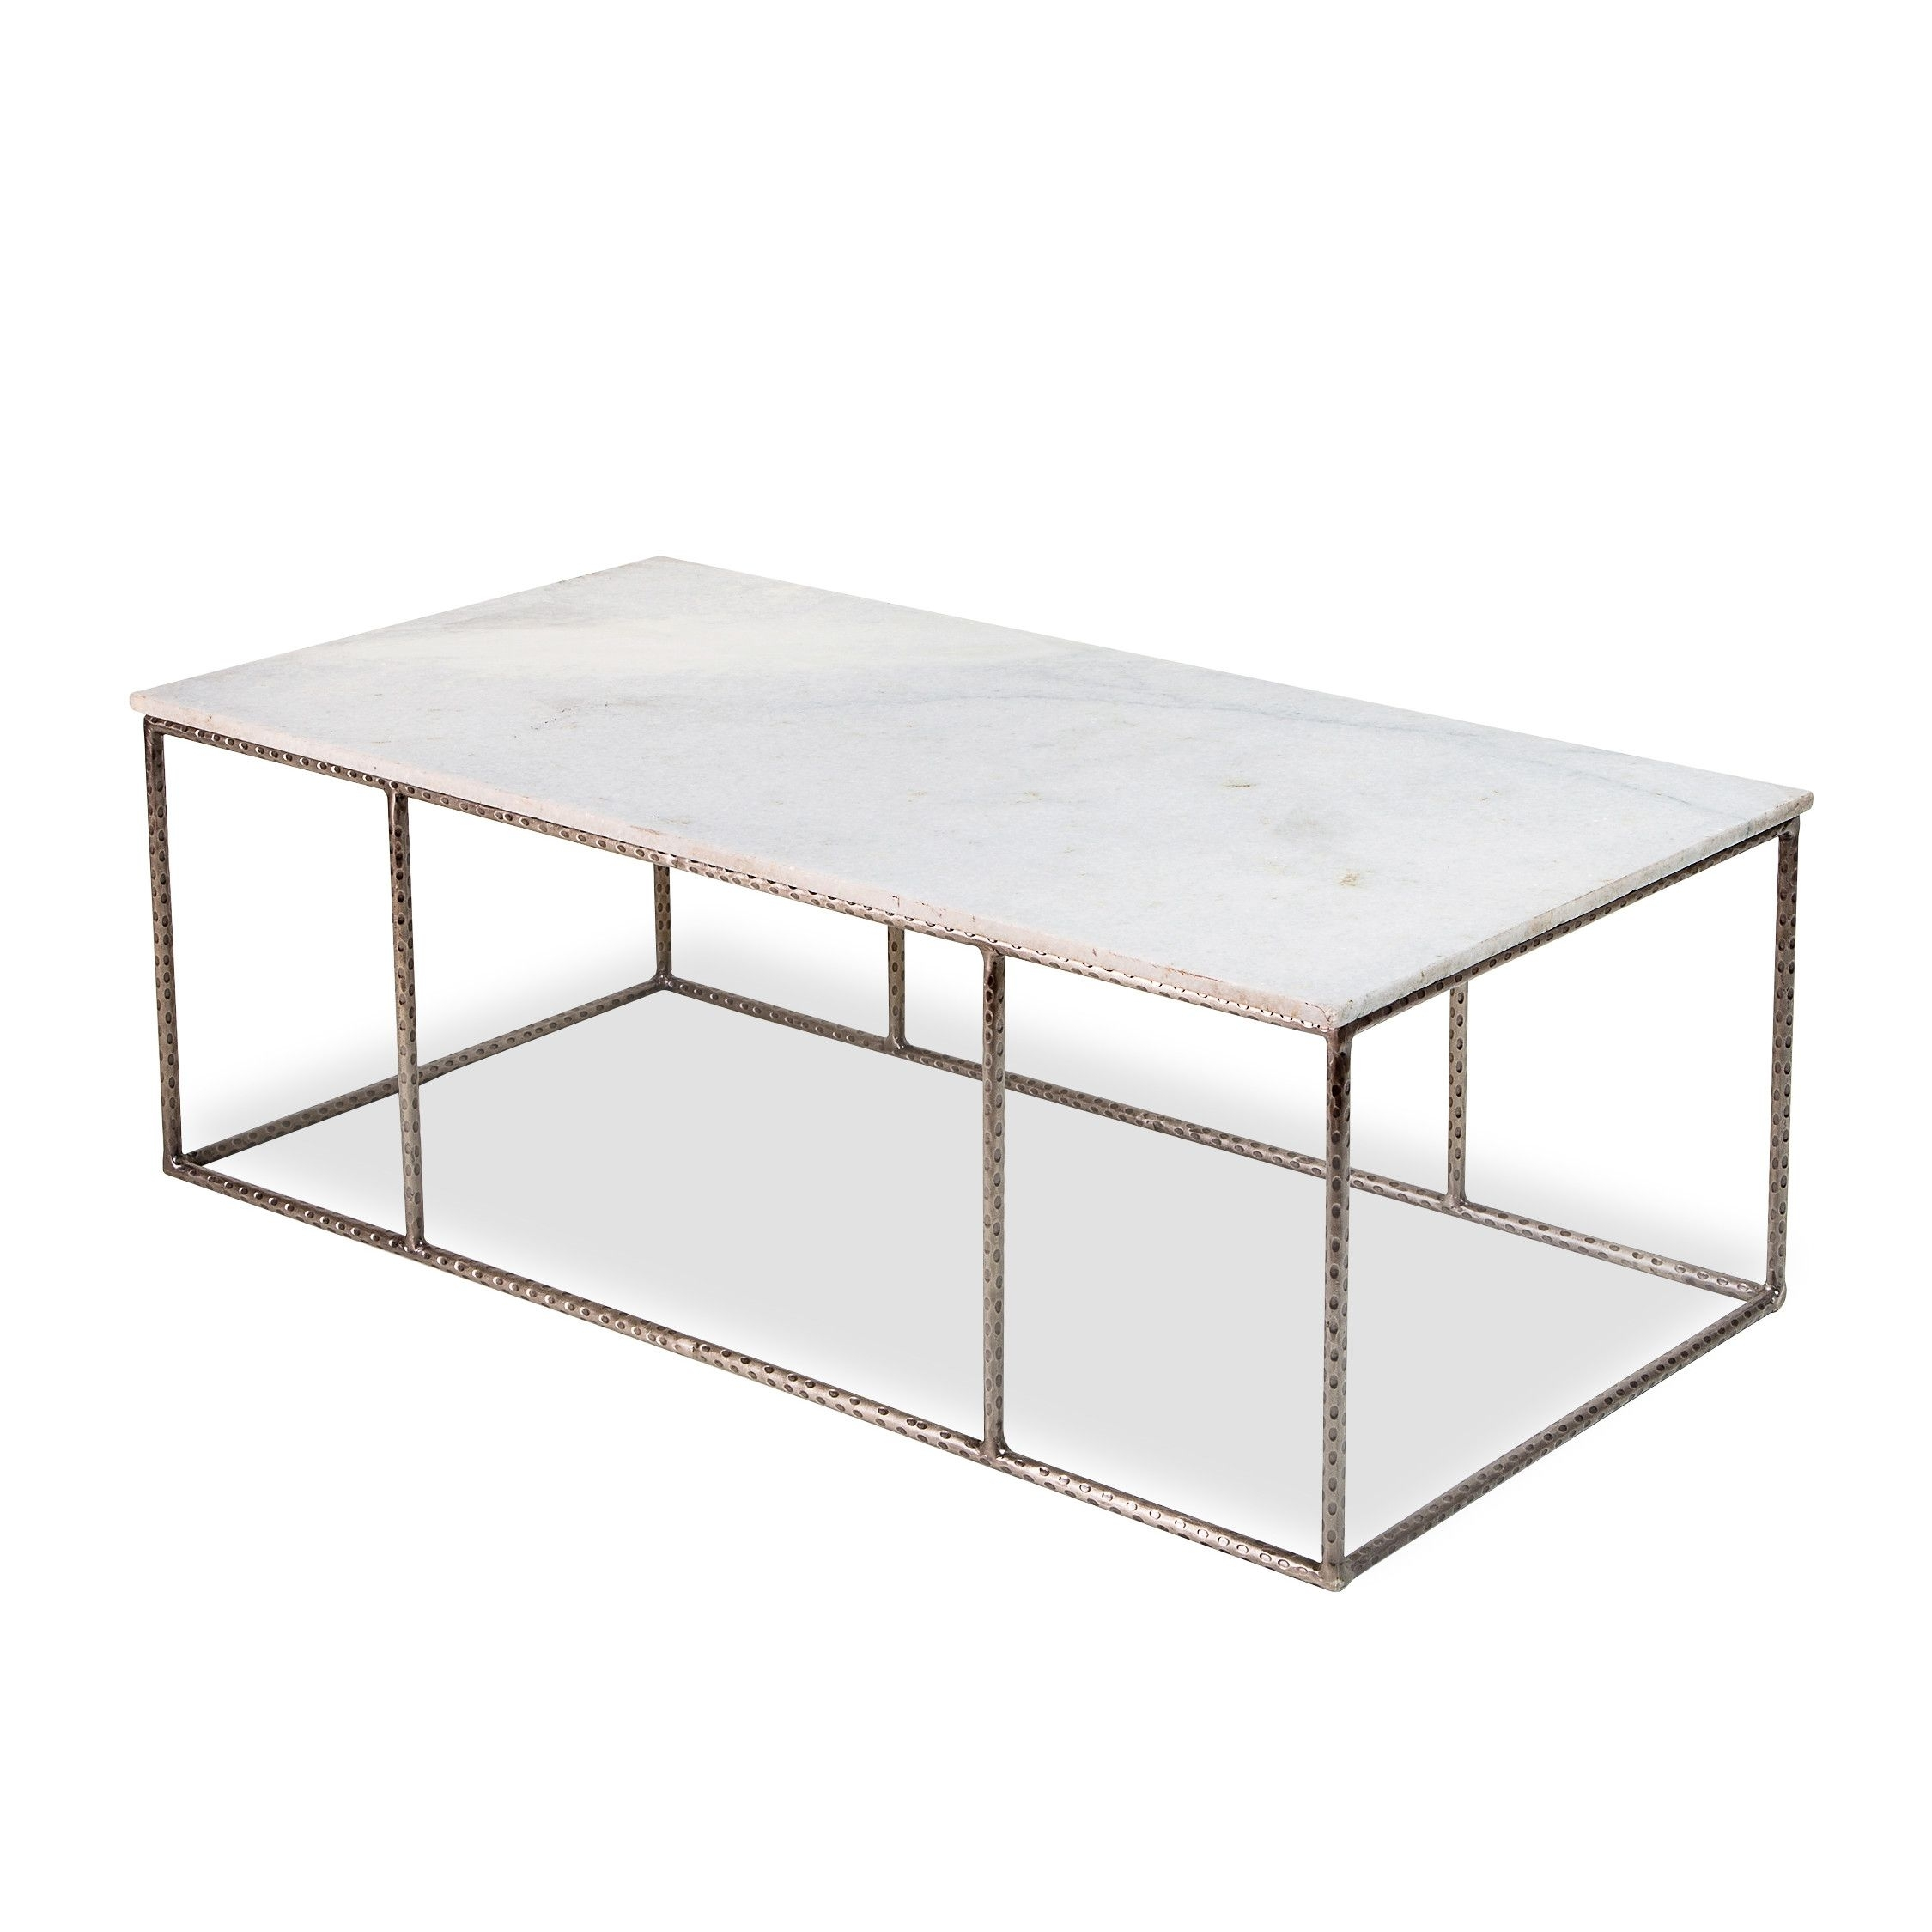 Manchester Marble Coffee Table | Ideas For The House | Pinterest inside Large Slab Marble Coffee Tables With Antiqued Silver Base (Image 16 of 30)